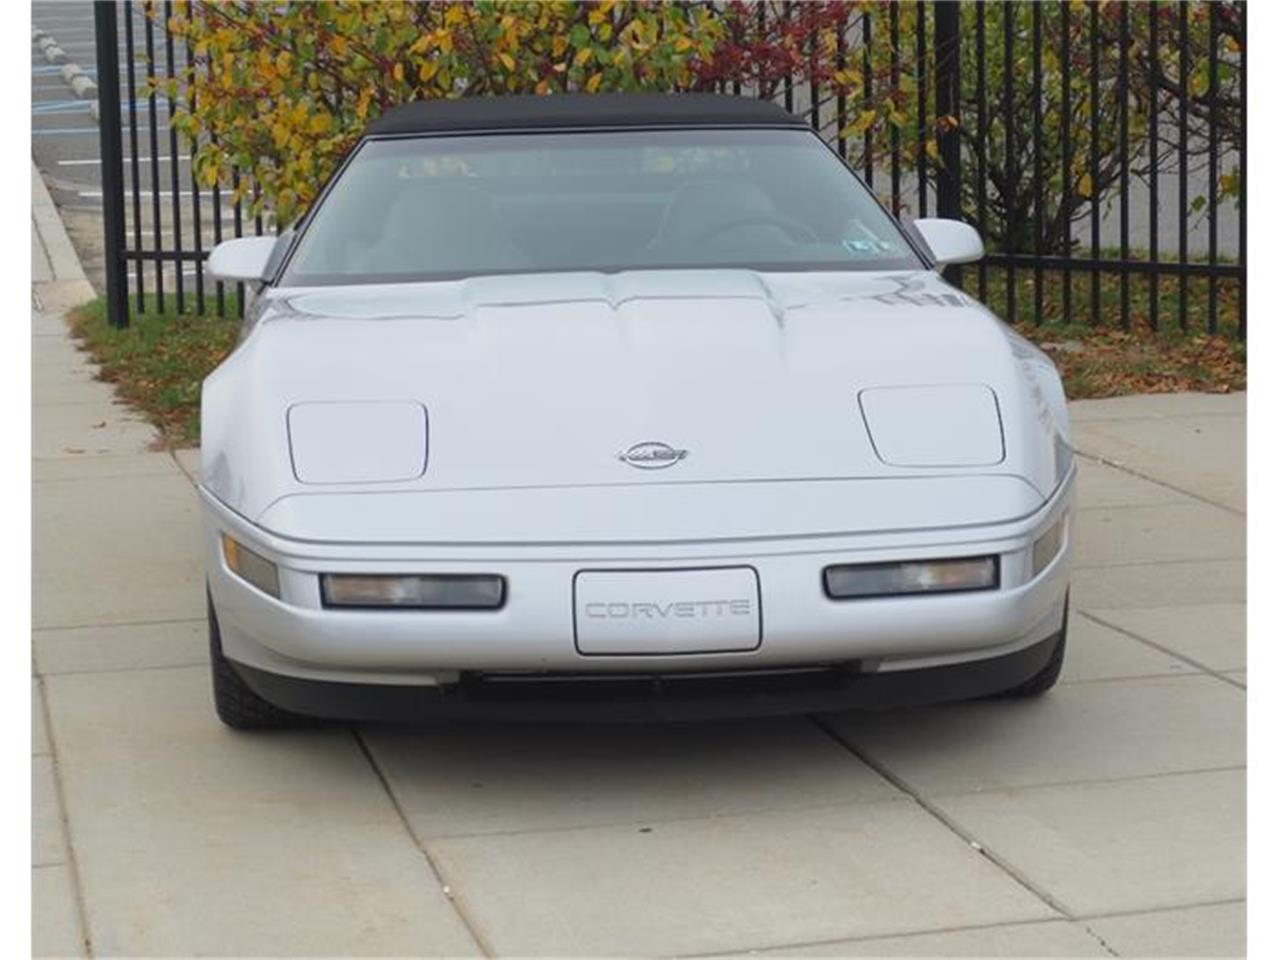 Large Picture of 1996 Corvette - $25,900.00 - G17I